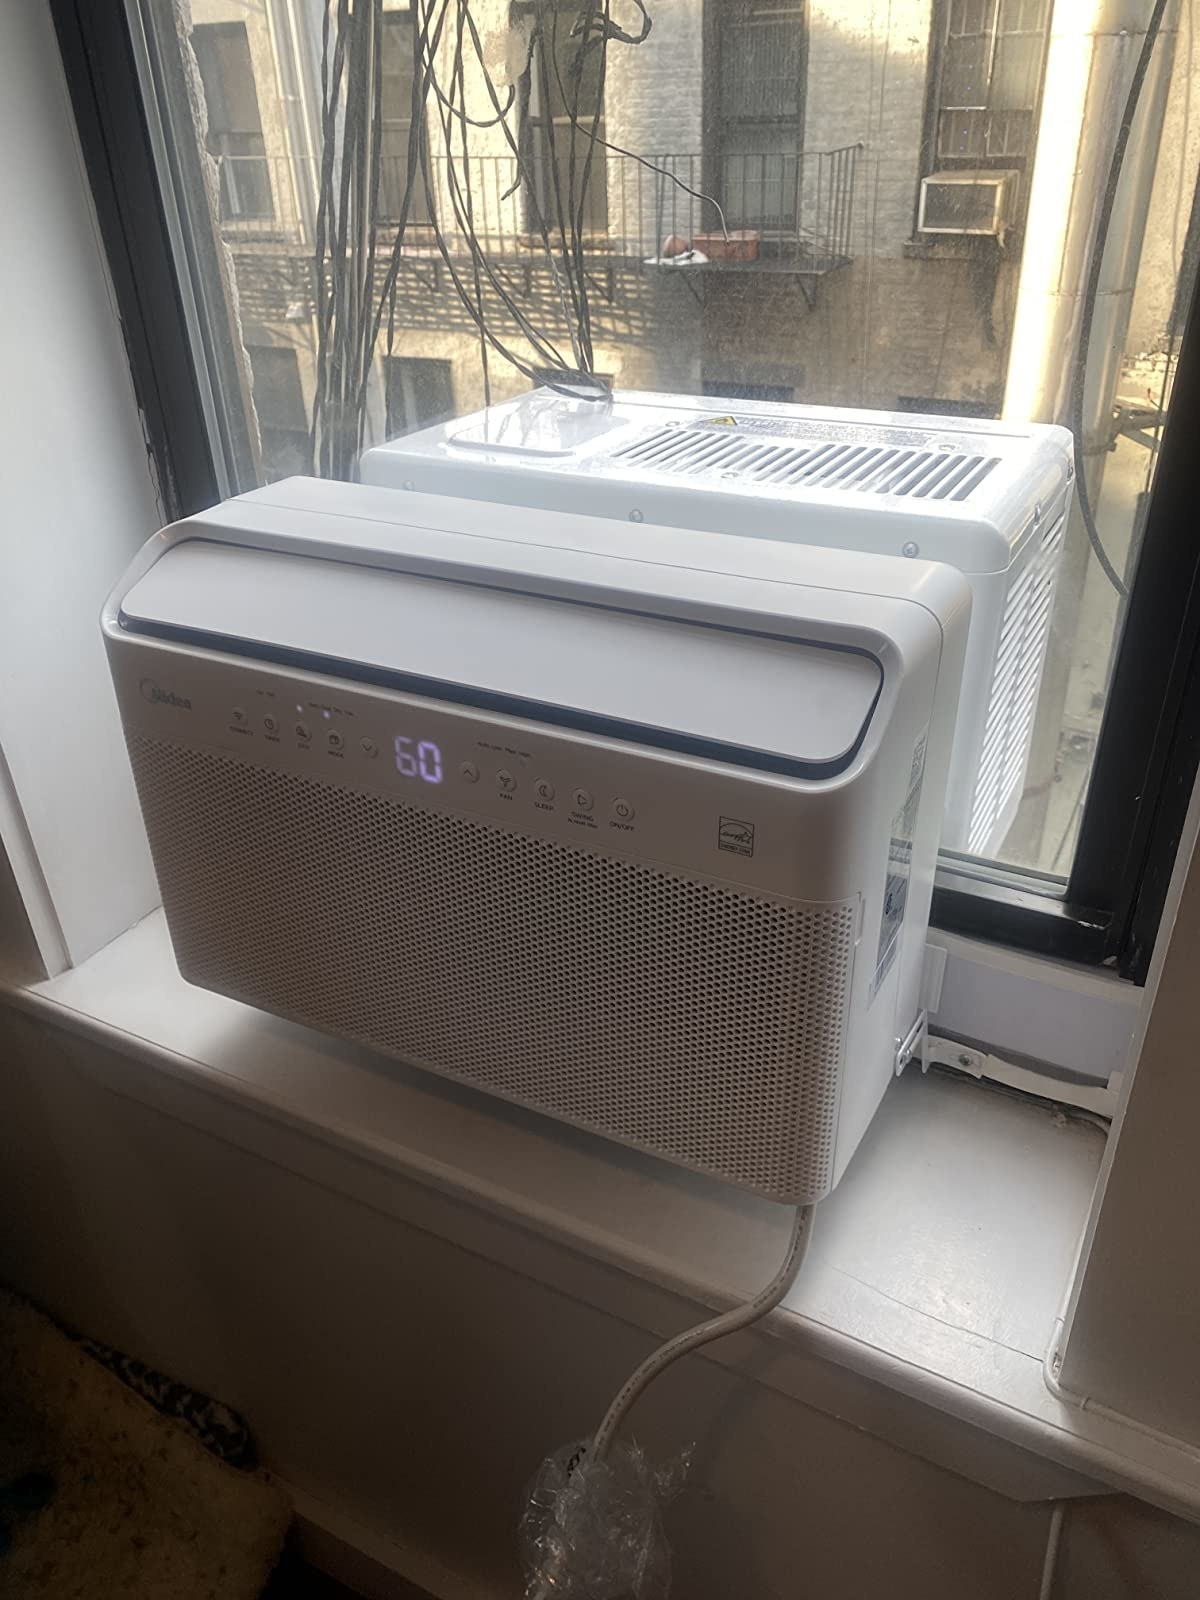 reviewer image of the midea U-shaped air conditioner installed in a window